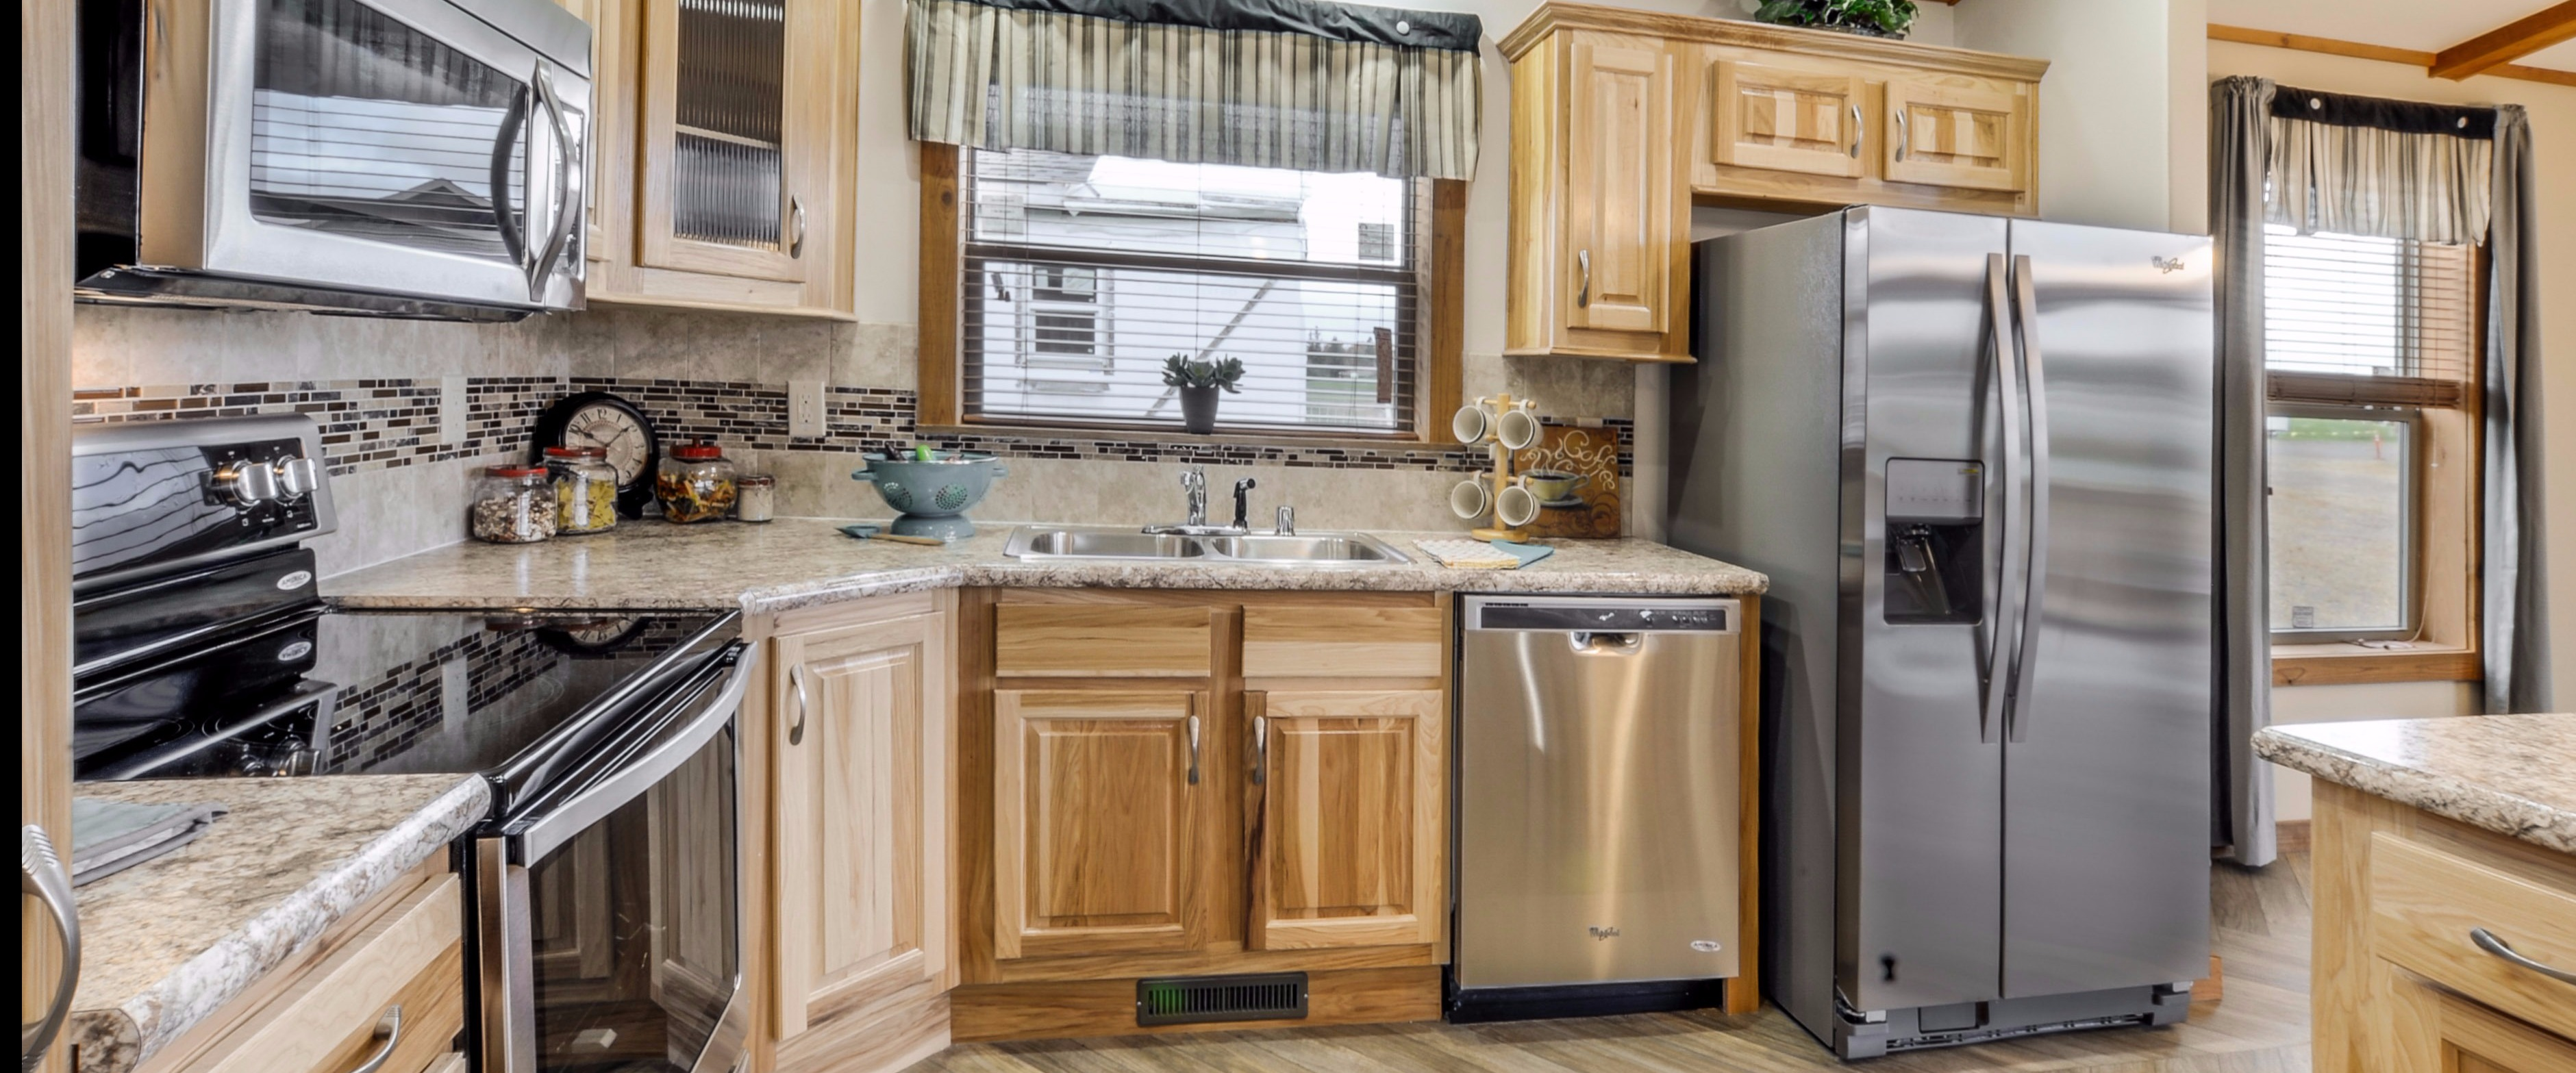 Ideal Homes of Barnum MN Modular Manufactured Home Builder  More